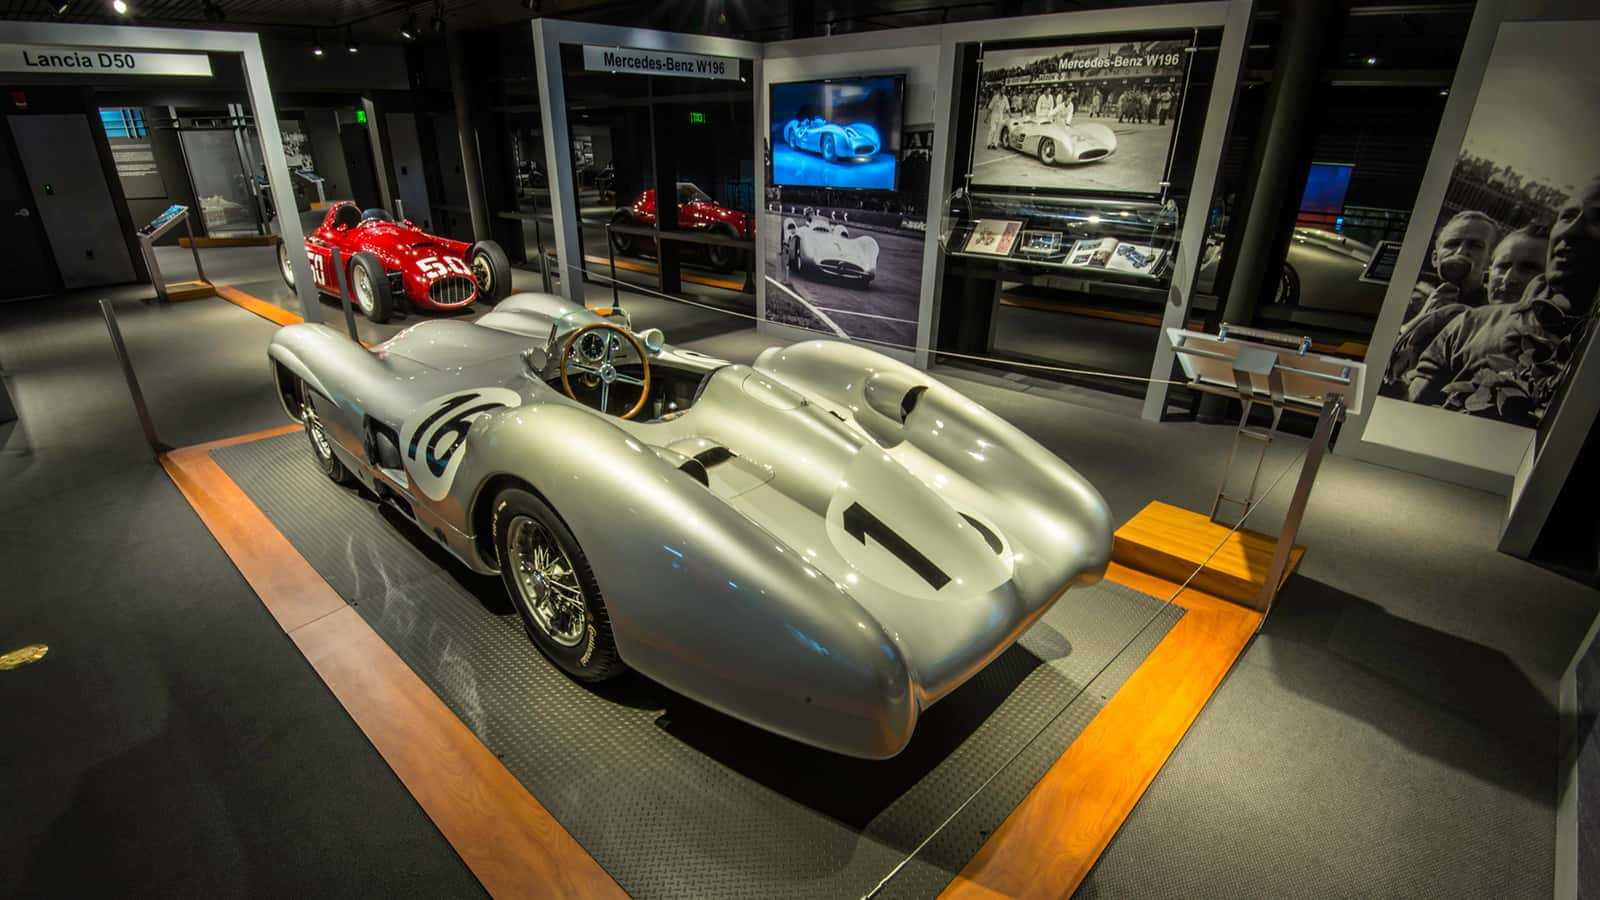 Closeup view of the Mercedes-Benz W196 at The Revs Institute Rivals exhibit 2015.